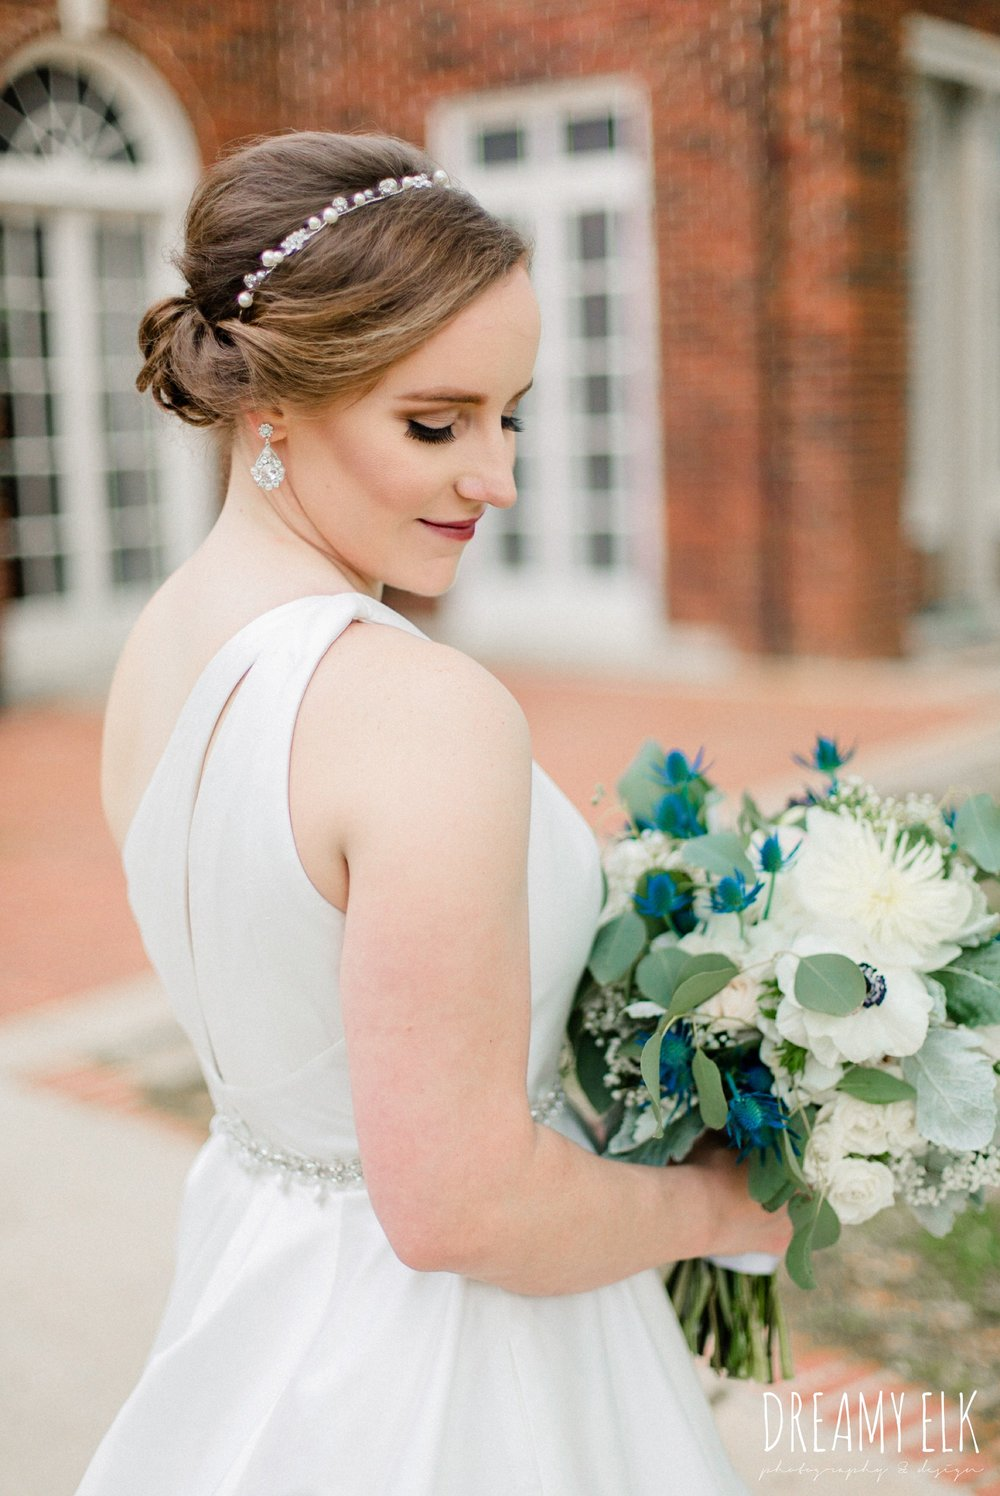 blue wedding bouquet, modern wedding dress ballgown, spring wedding, the astin mansion, bryan, texas, spring wedding, dreamy elk photography and design